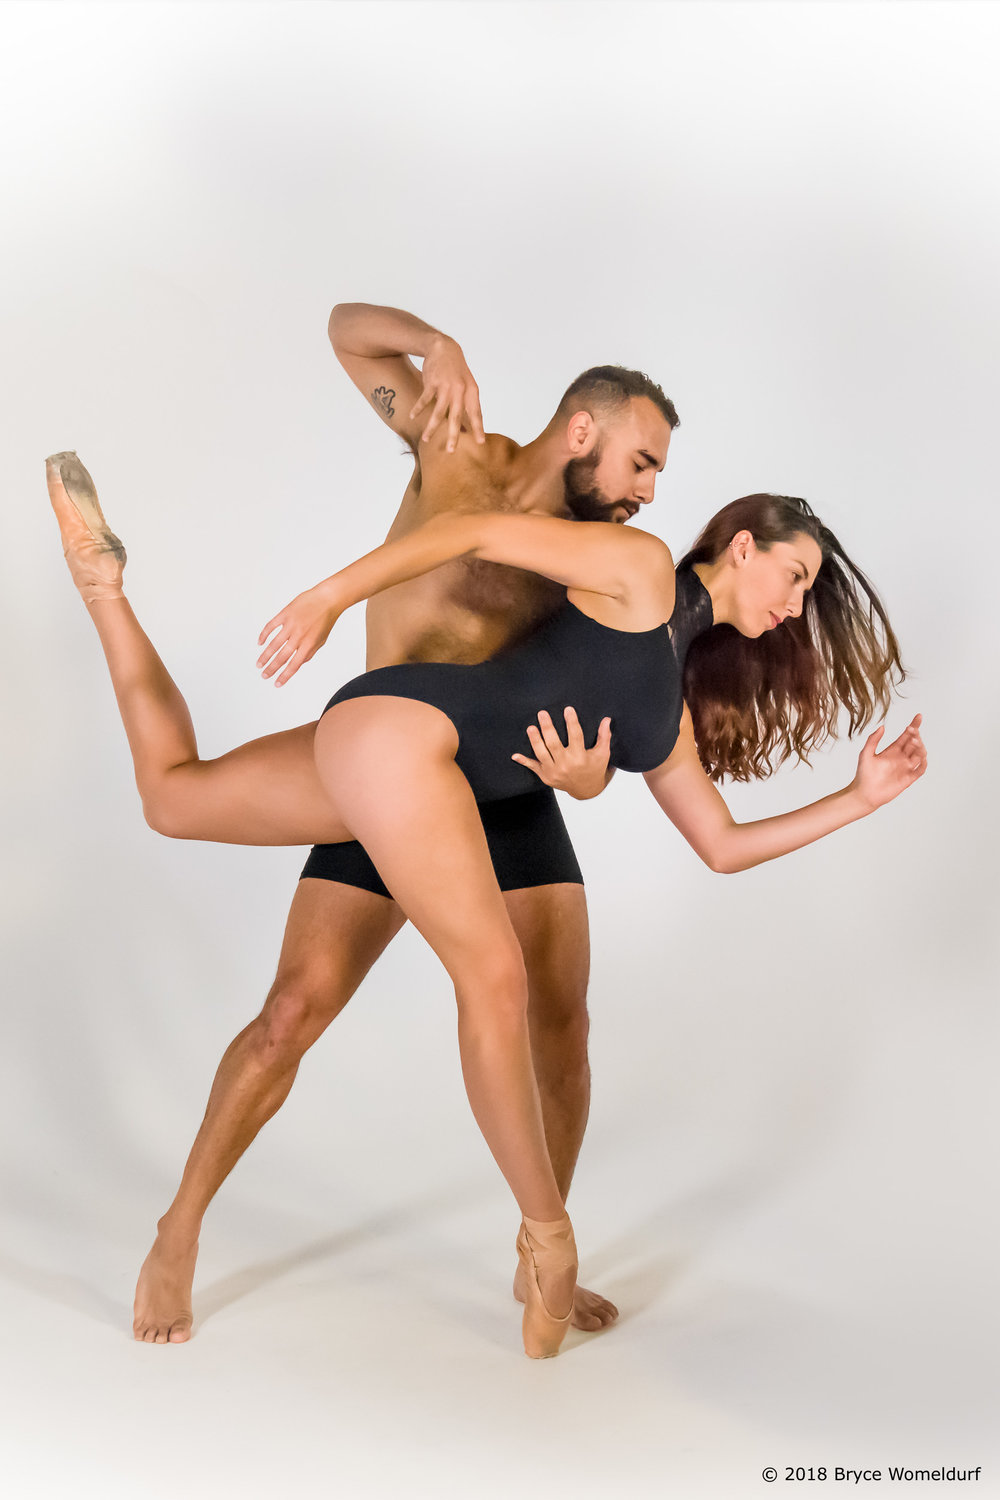 From 2018 USF Dance photos in studio